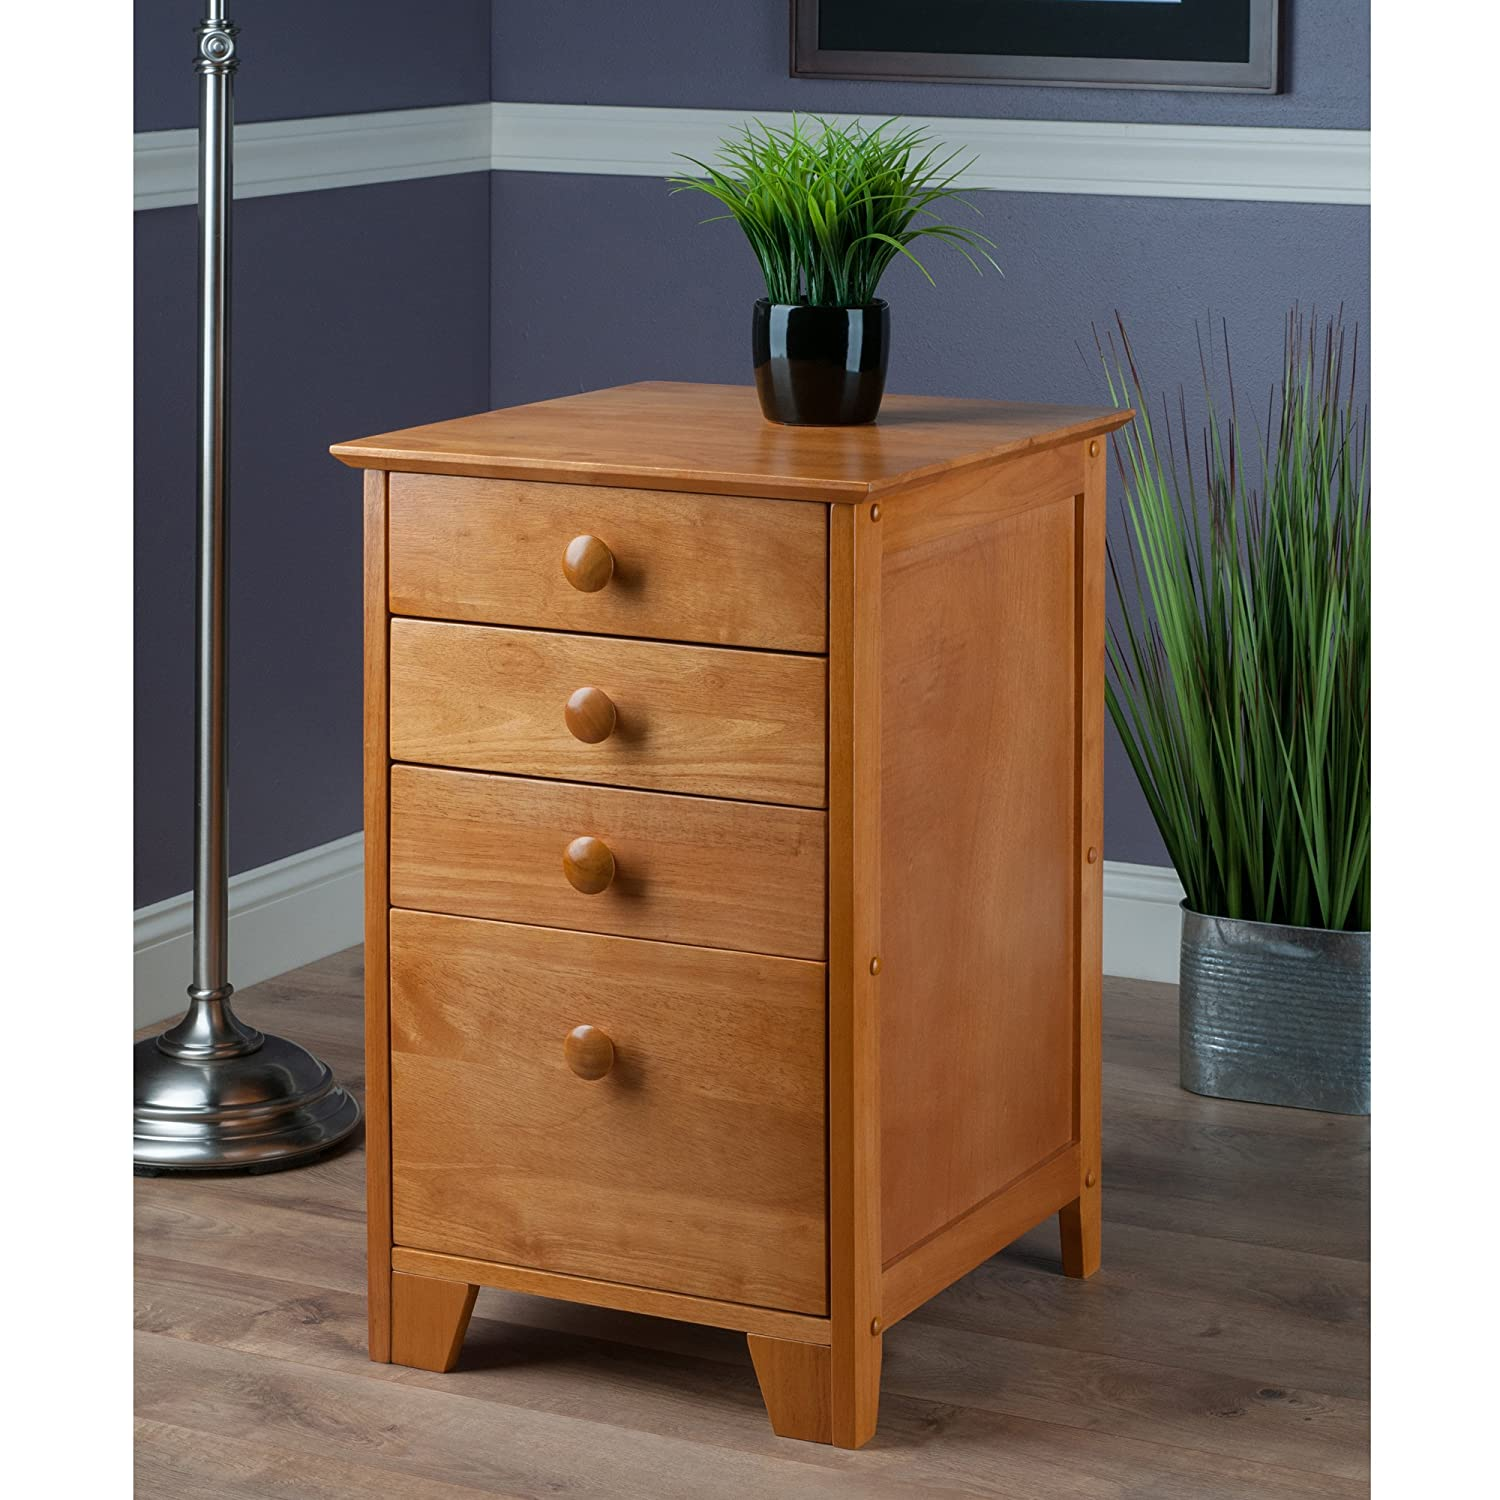 Amazon.com: Winsome Solid Wood 4 Drawer Lateral Wood File Cabinet ...